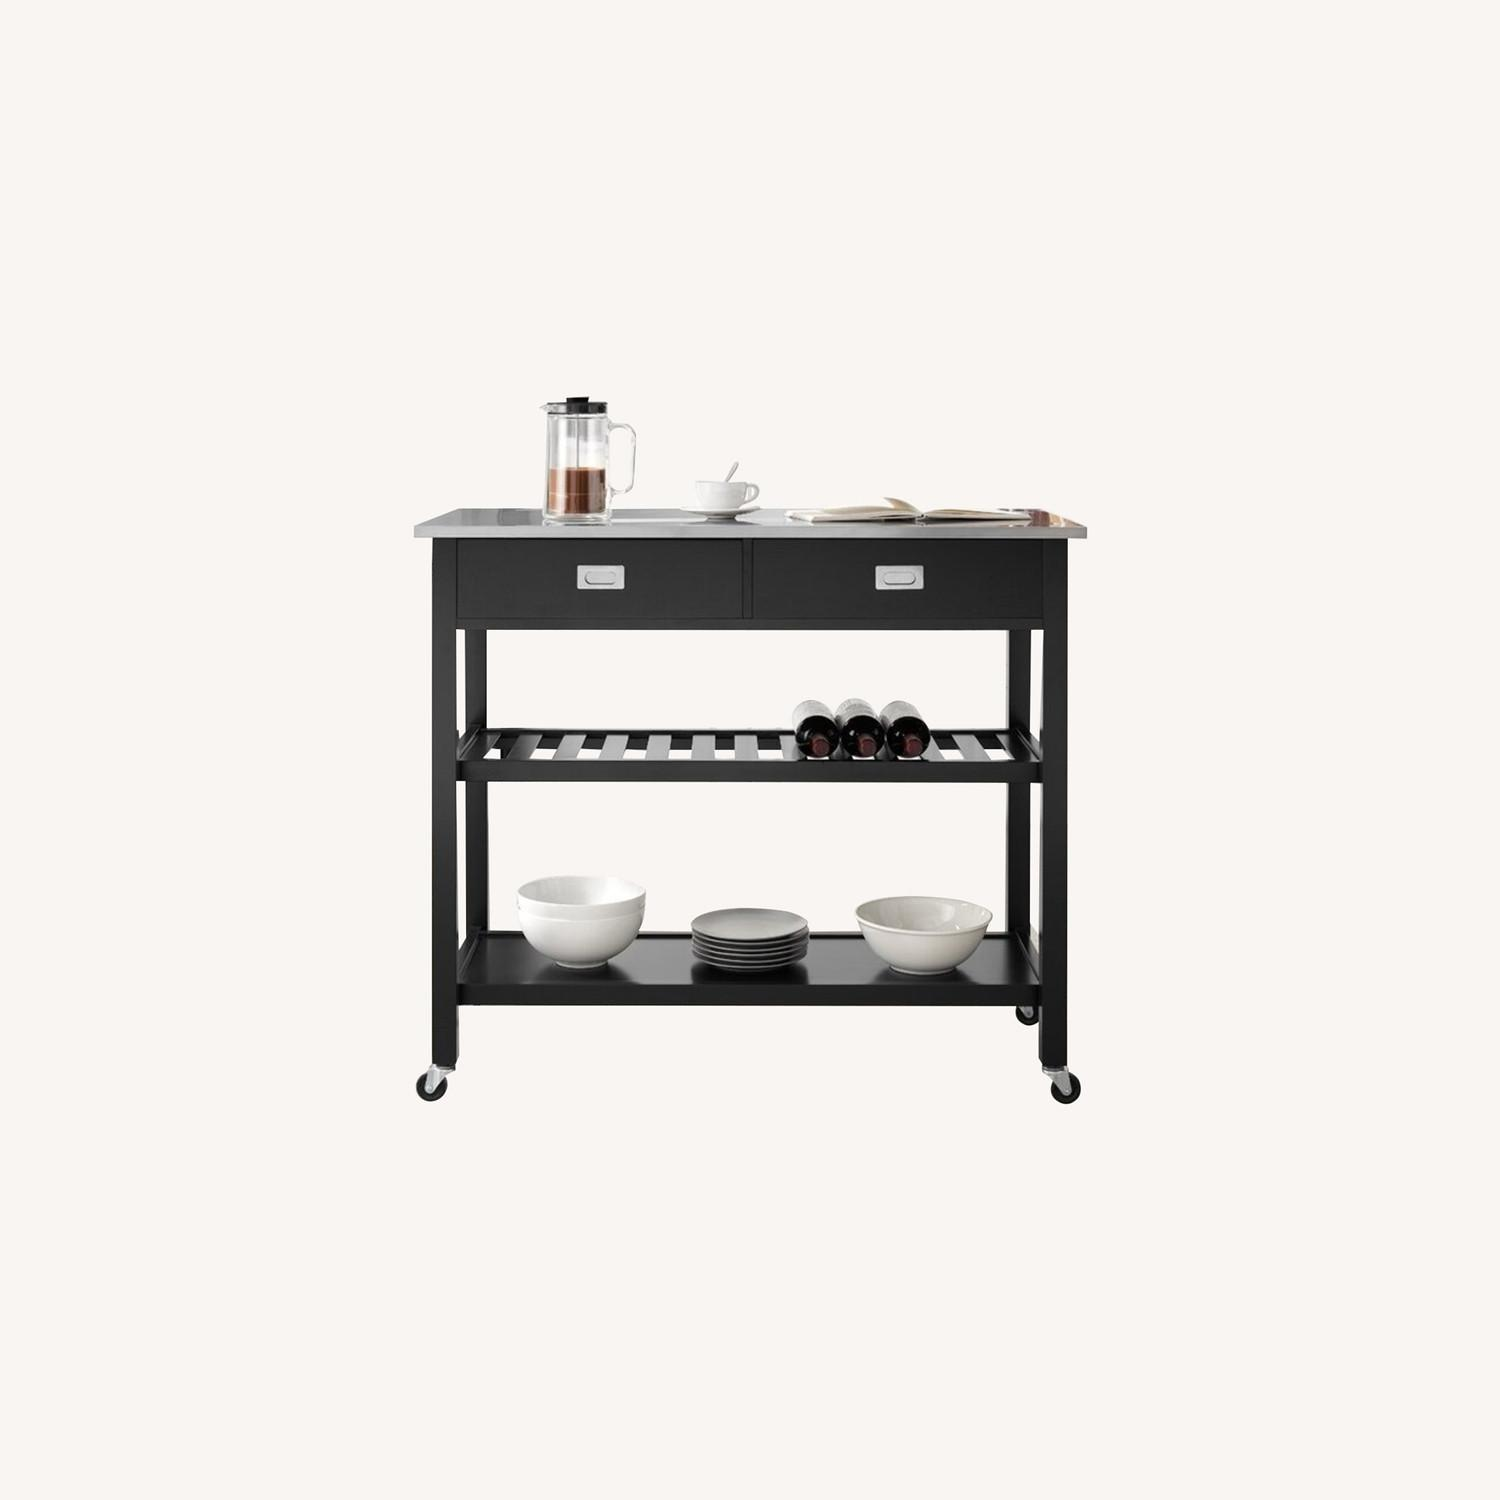 Wayfair Kitchen Island with Stainless Steel Top - image-0